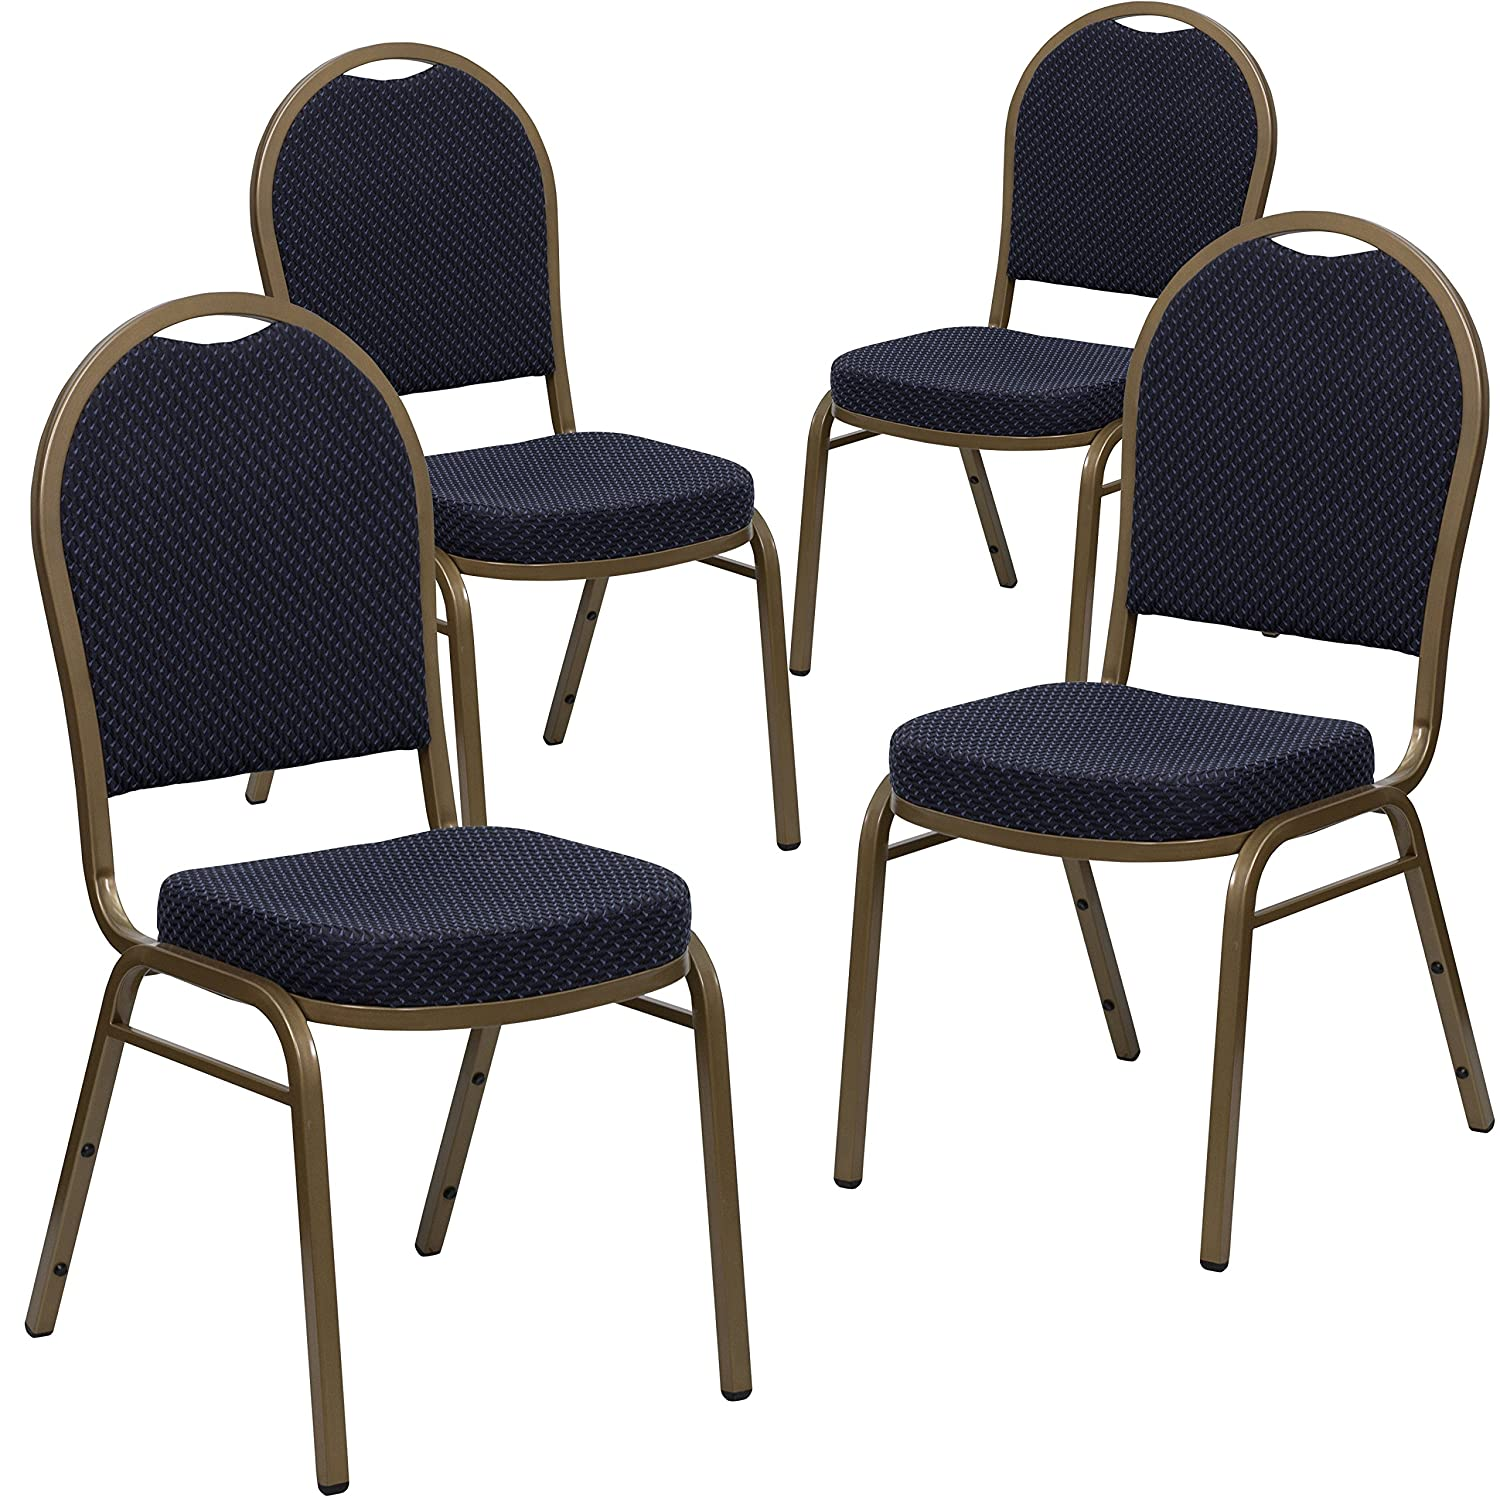 Amazon com flash furniture 4 pk hercules series dome back stacking banquet chair in navy patterned fabric gold frame kitchen dining